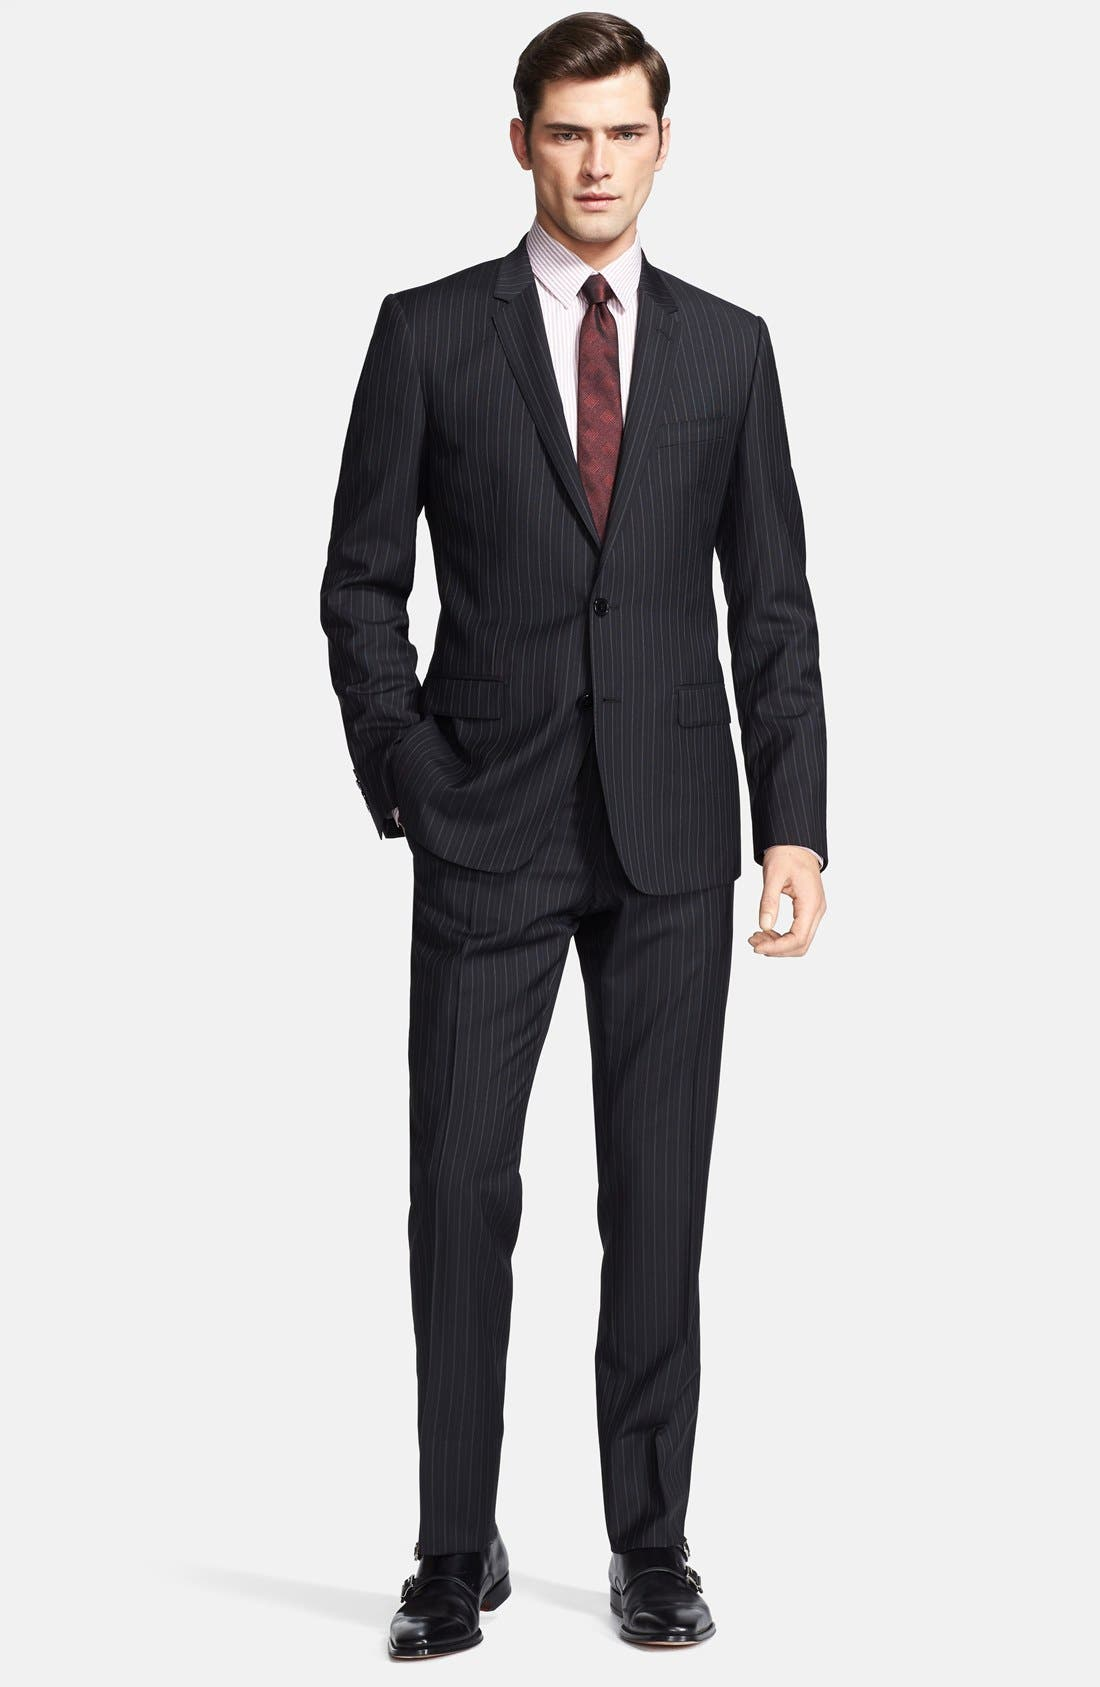 Alternate Image 1 Selected - Dolce&Gabbana 'Martini' Black Stripe Wool Suit